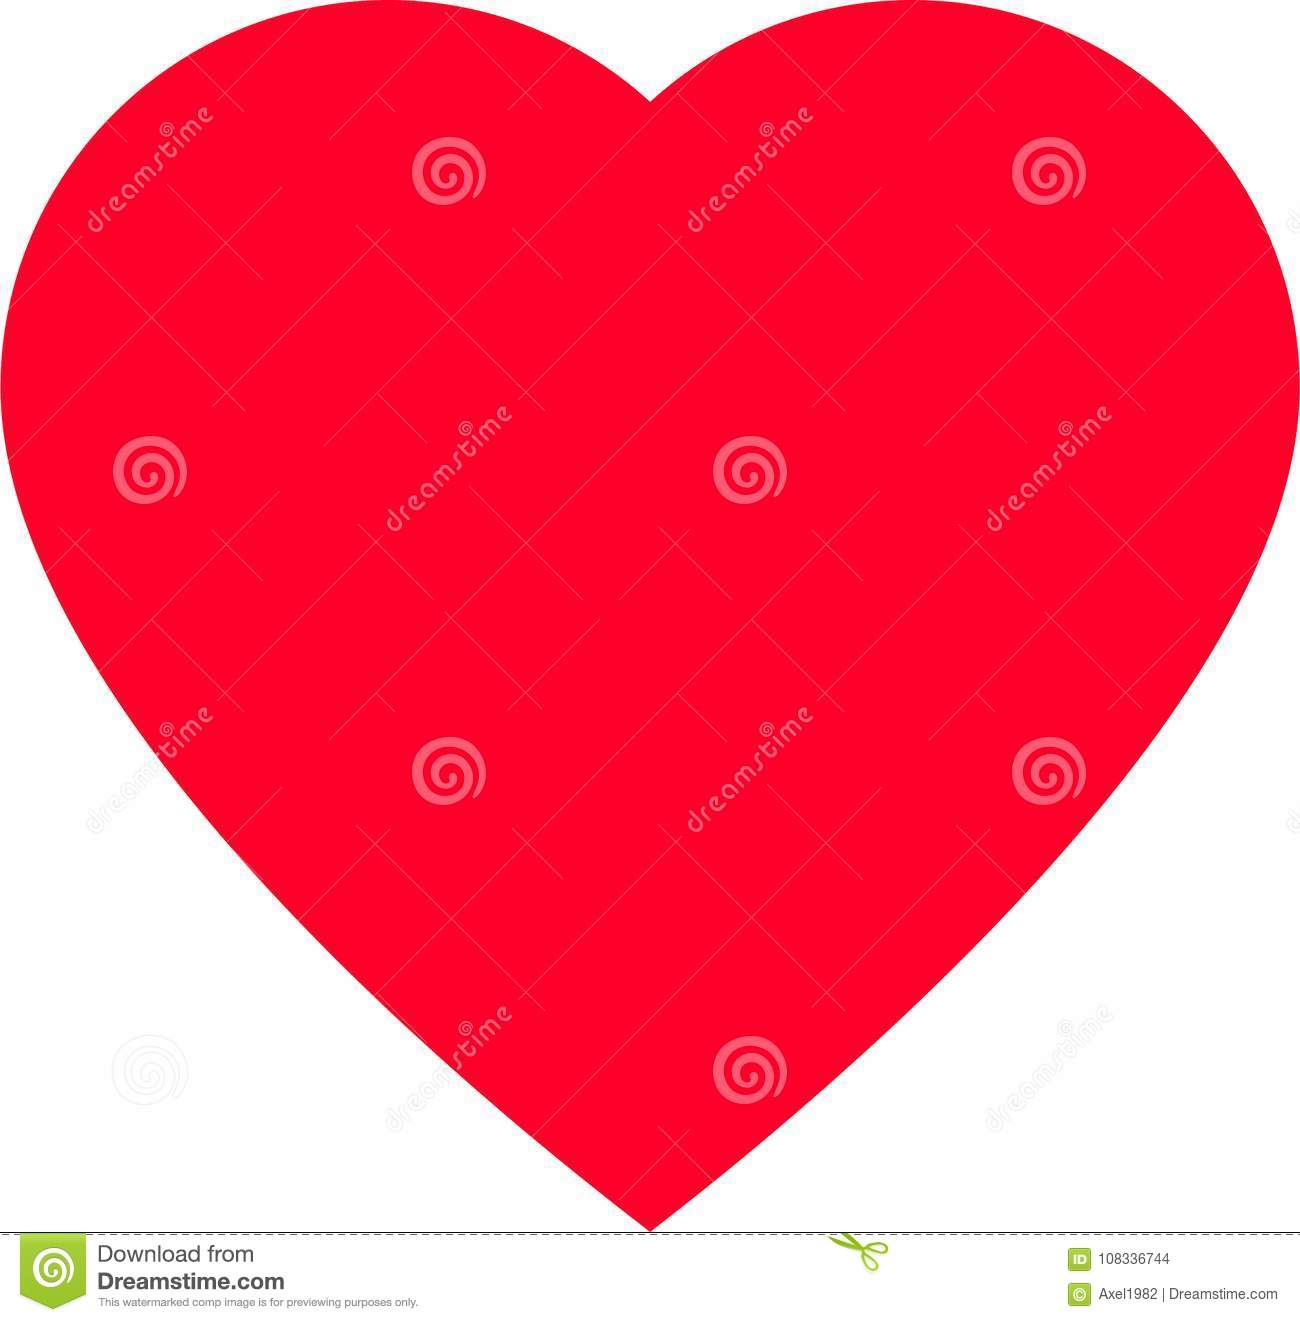 Red Heart Shape For Love Symbols Stock Vector Illustration Of Icon